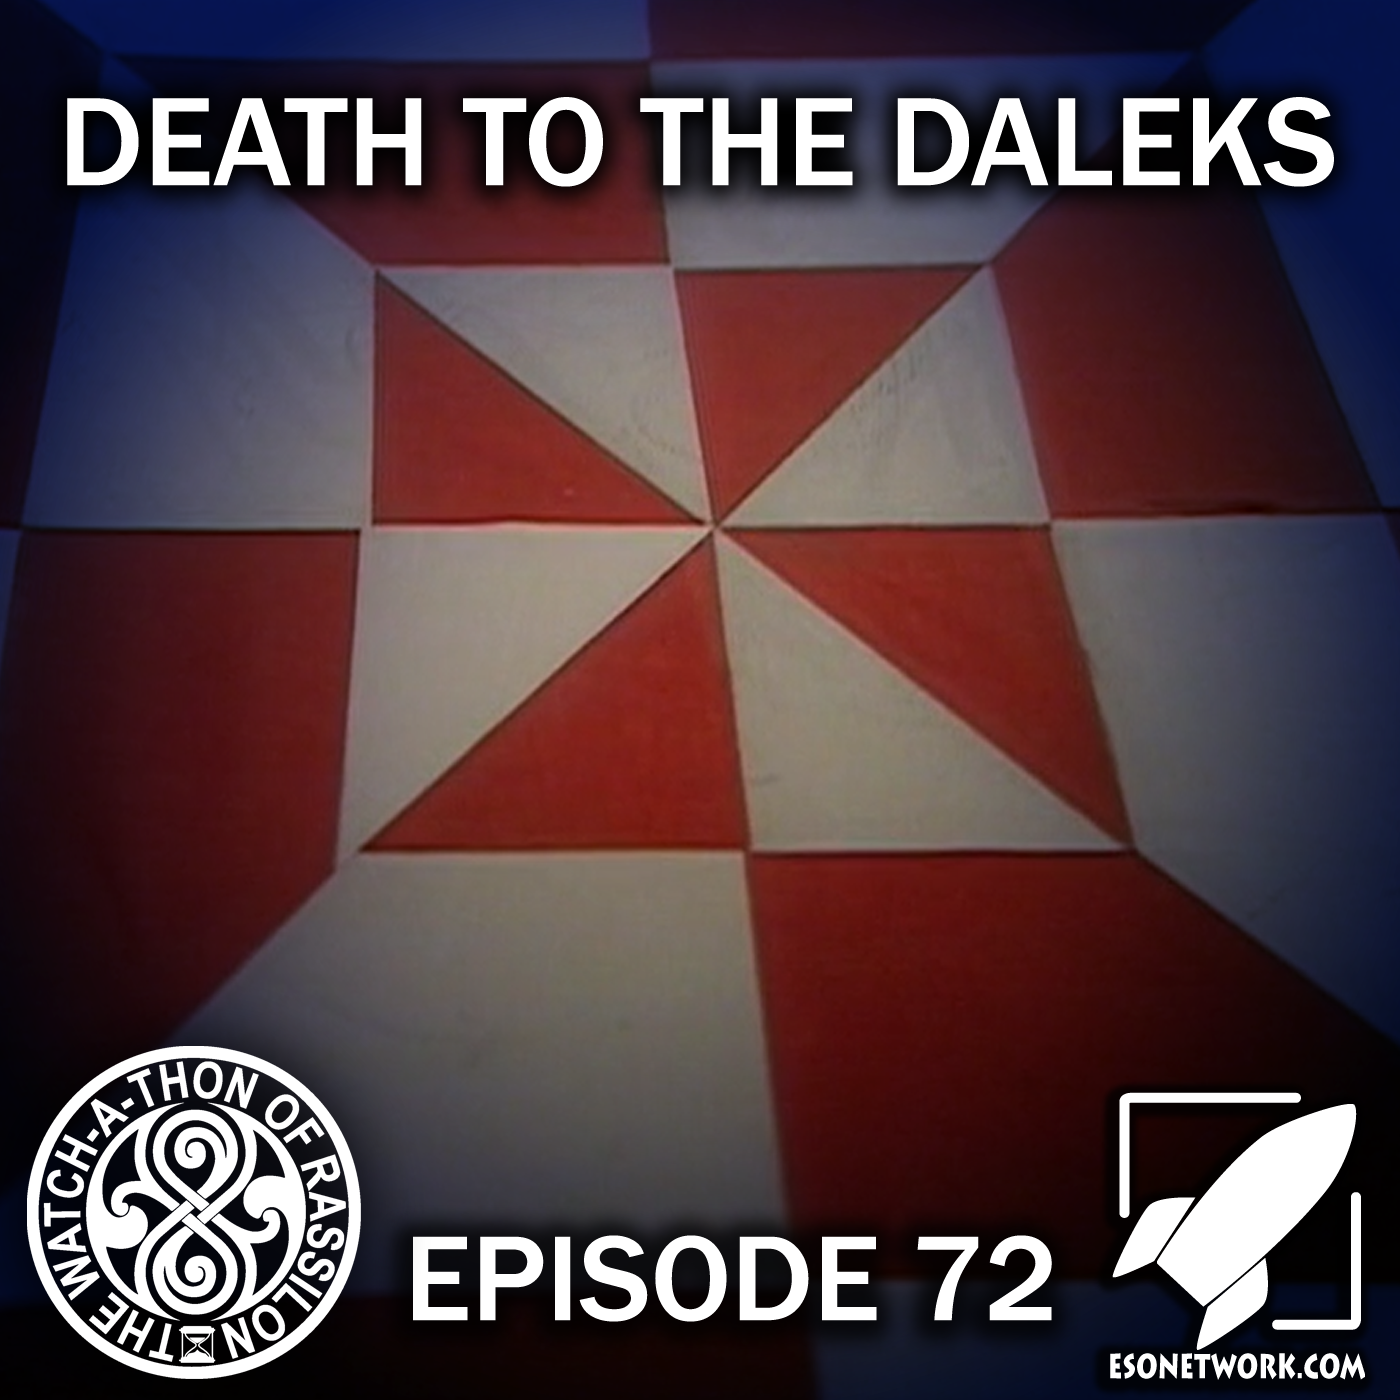 The Watch-A-Thon of Rassilon: Episode 72: Death to the Daleks